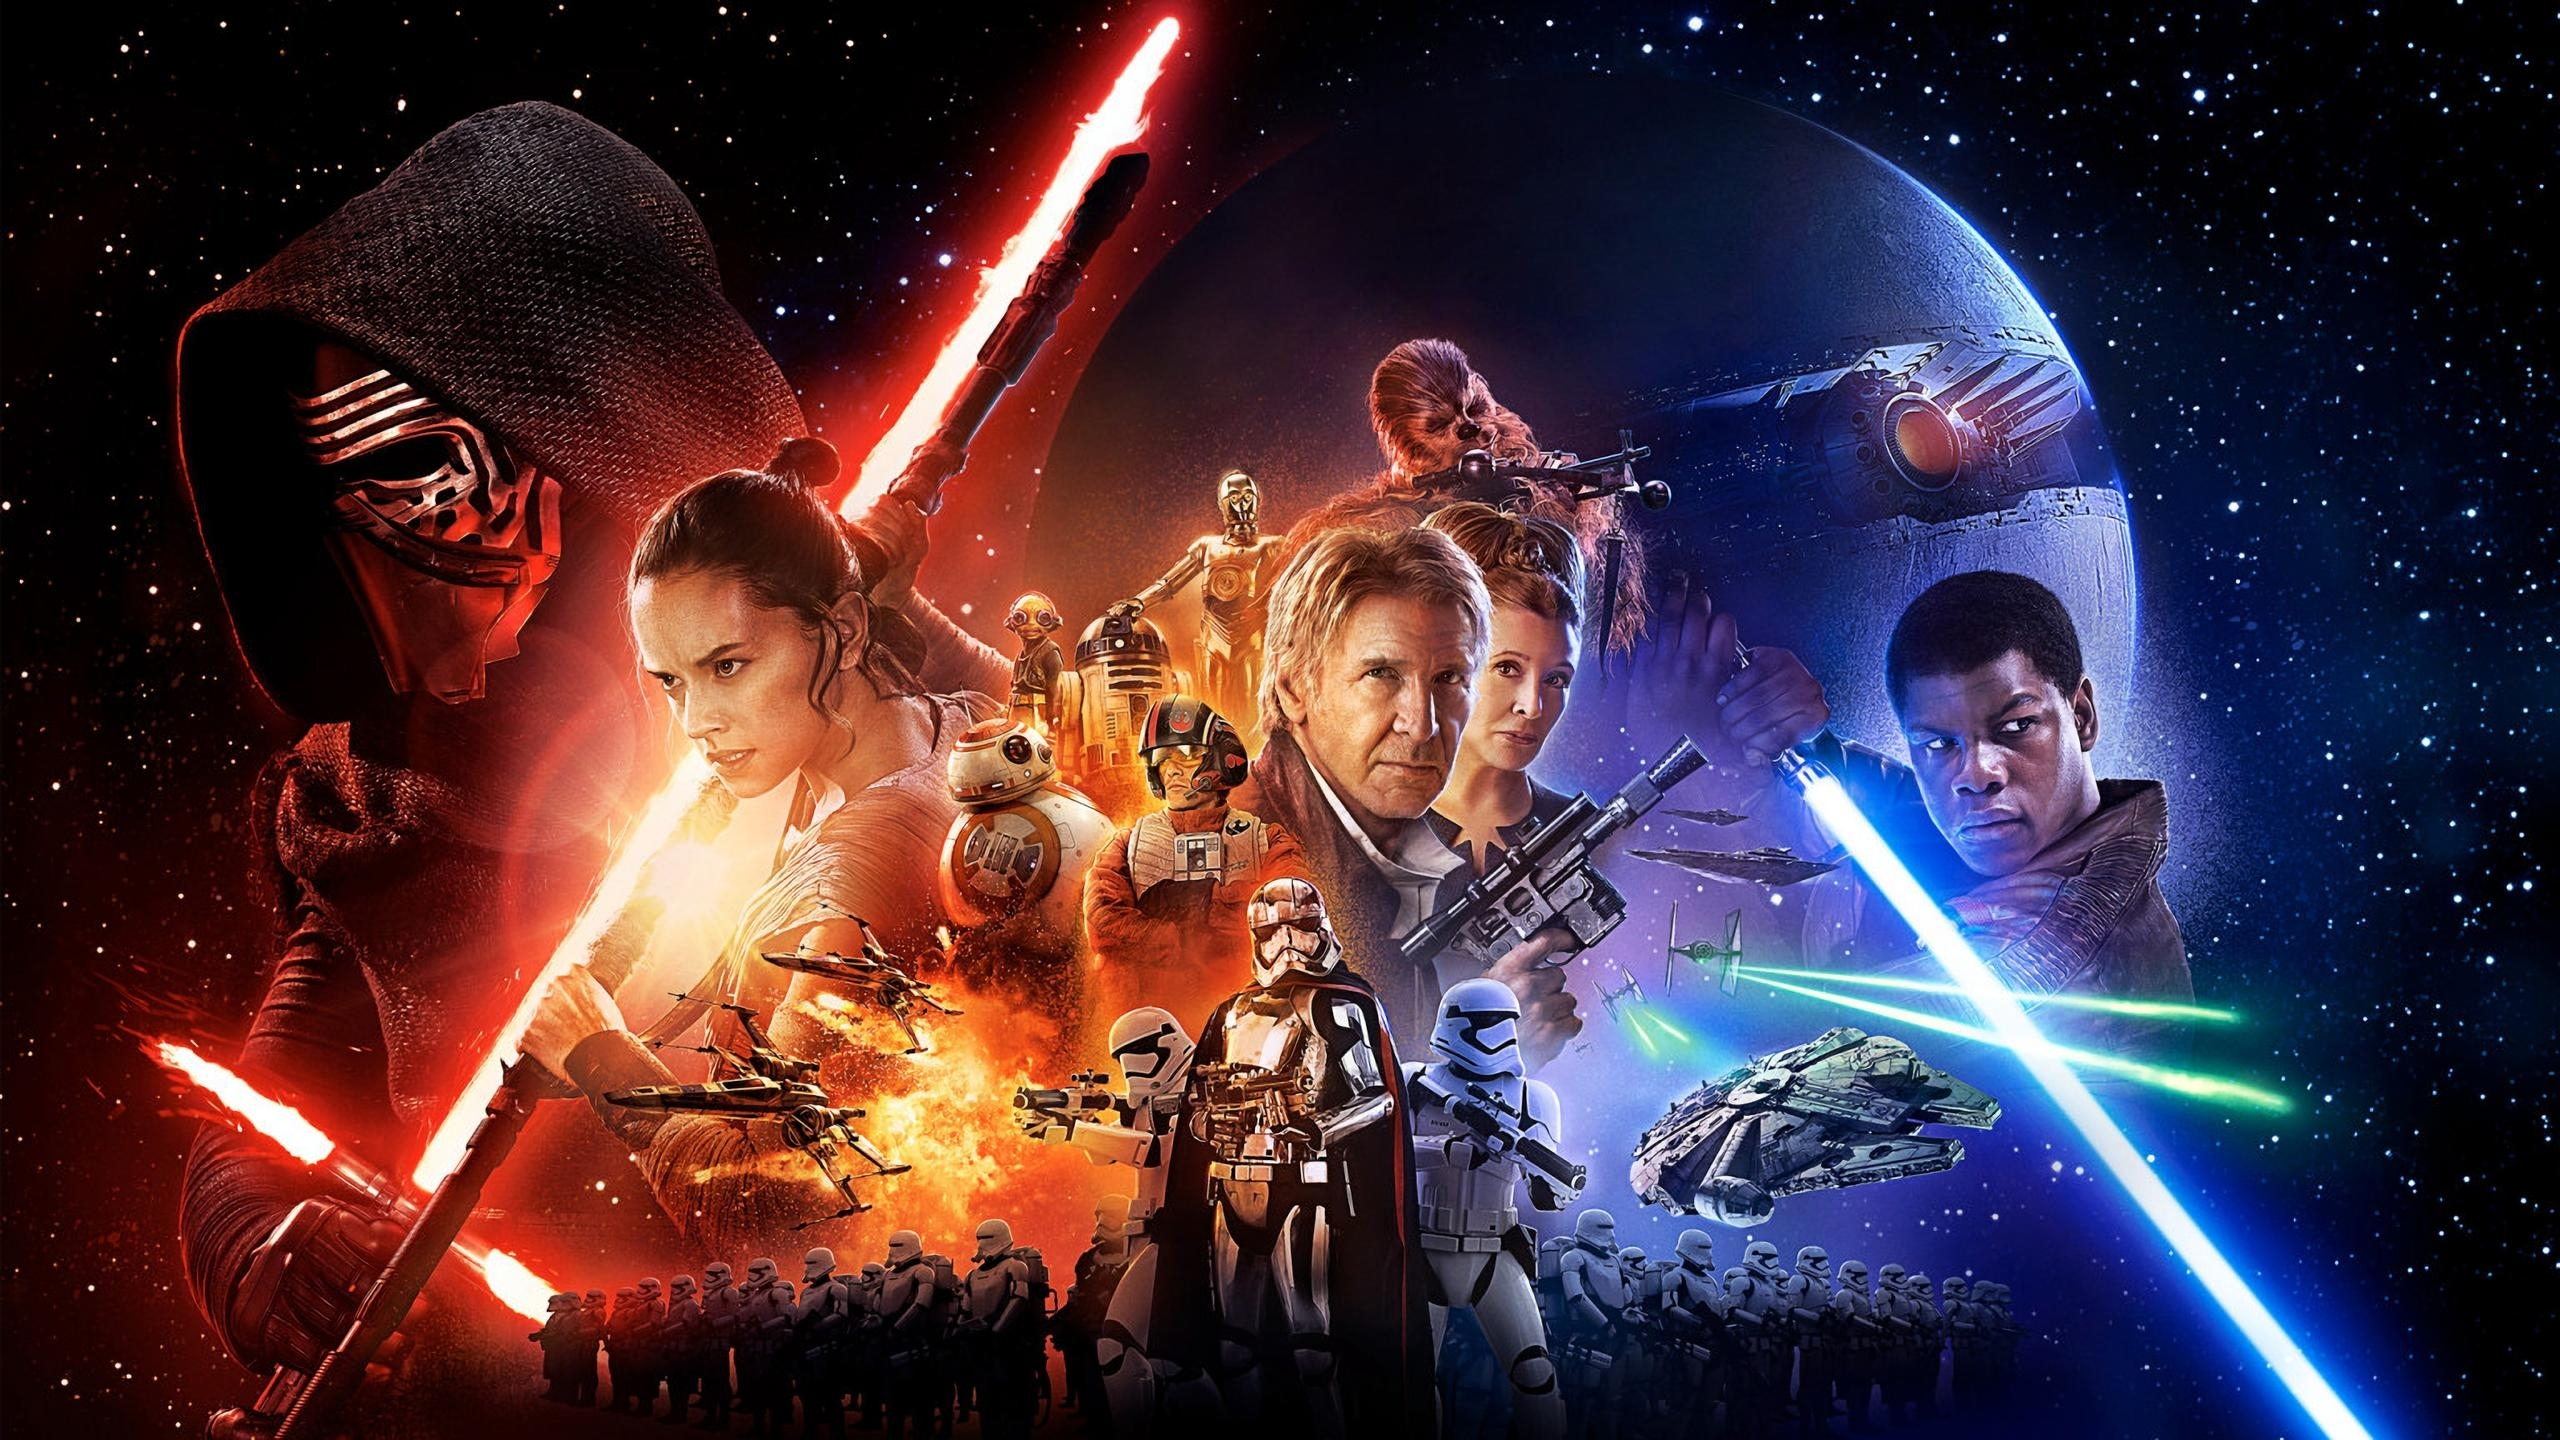 2928 star wars hd wallpapers | background images - wallpaper abyss